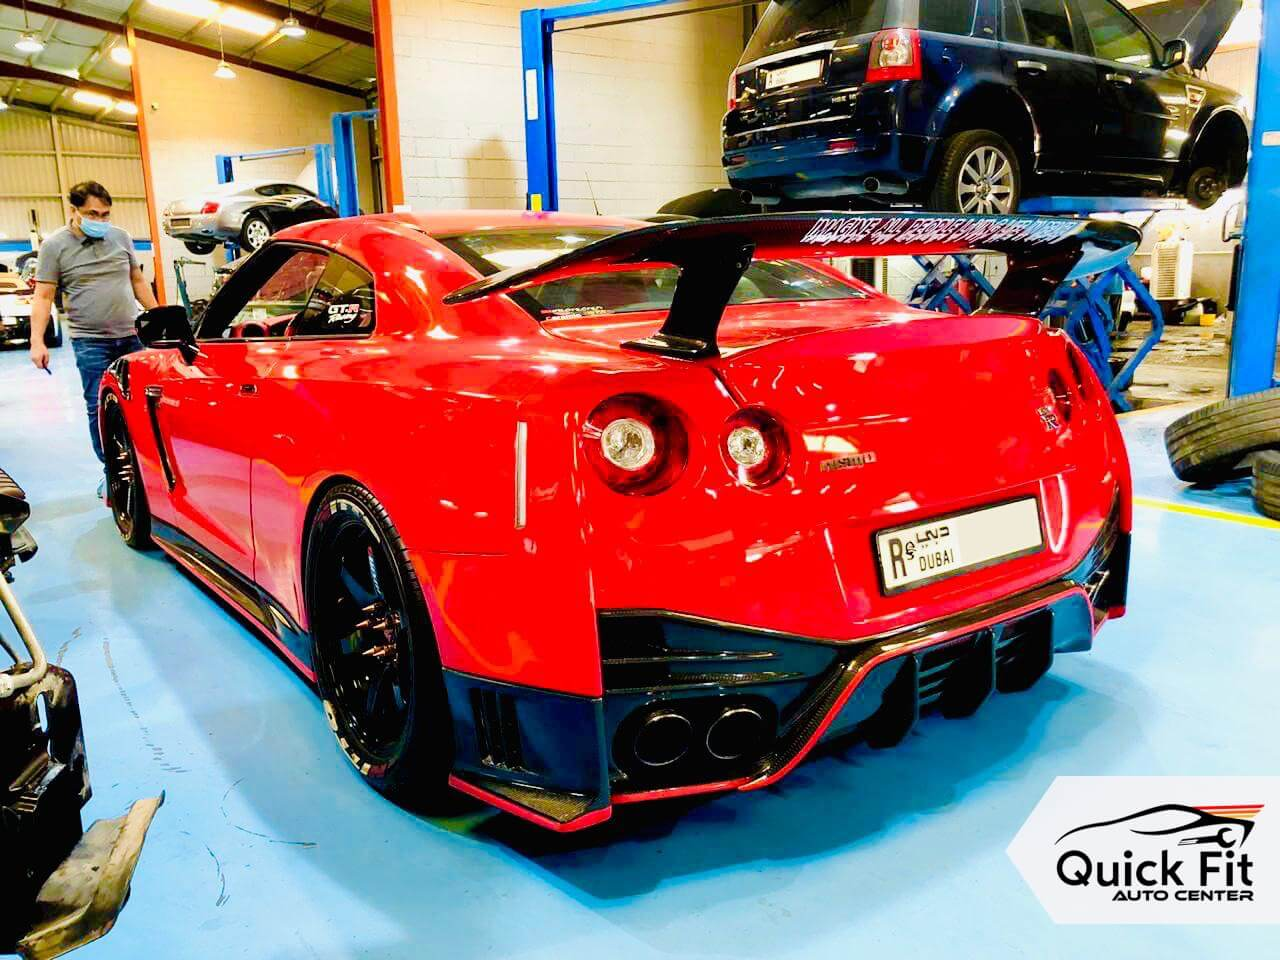 Red GTR is ready for Free Computerized Inspection in Dubai